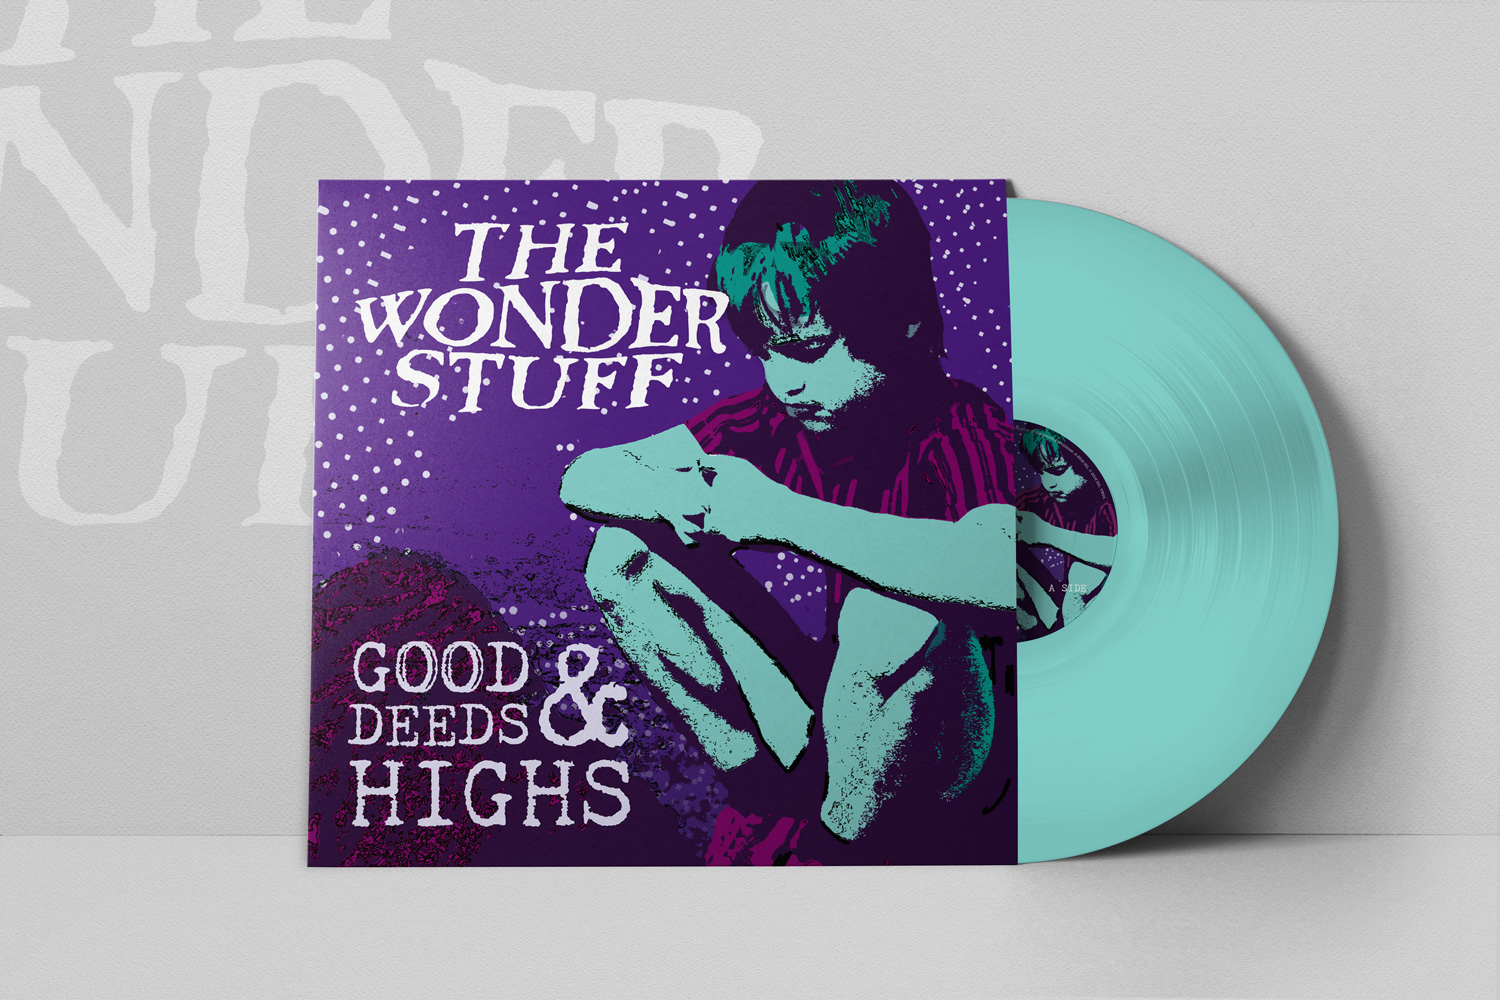 The Wonder Stuff Good Deeds & Highs